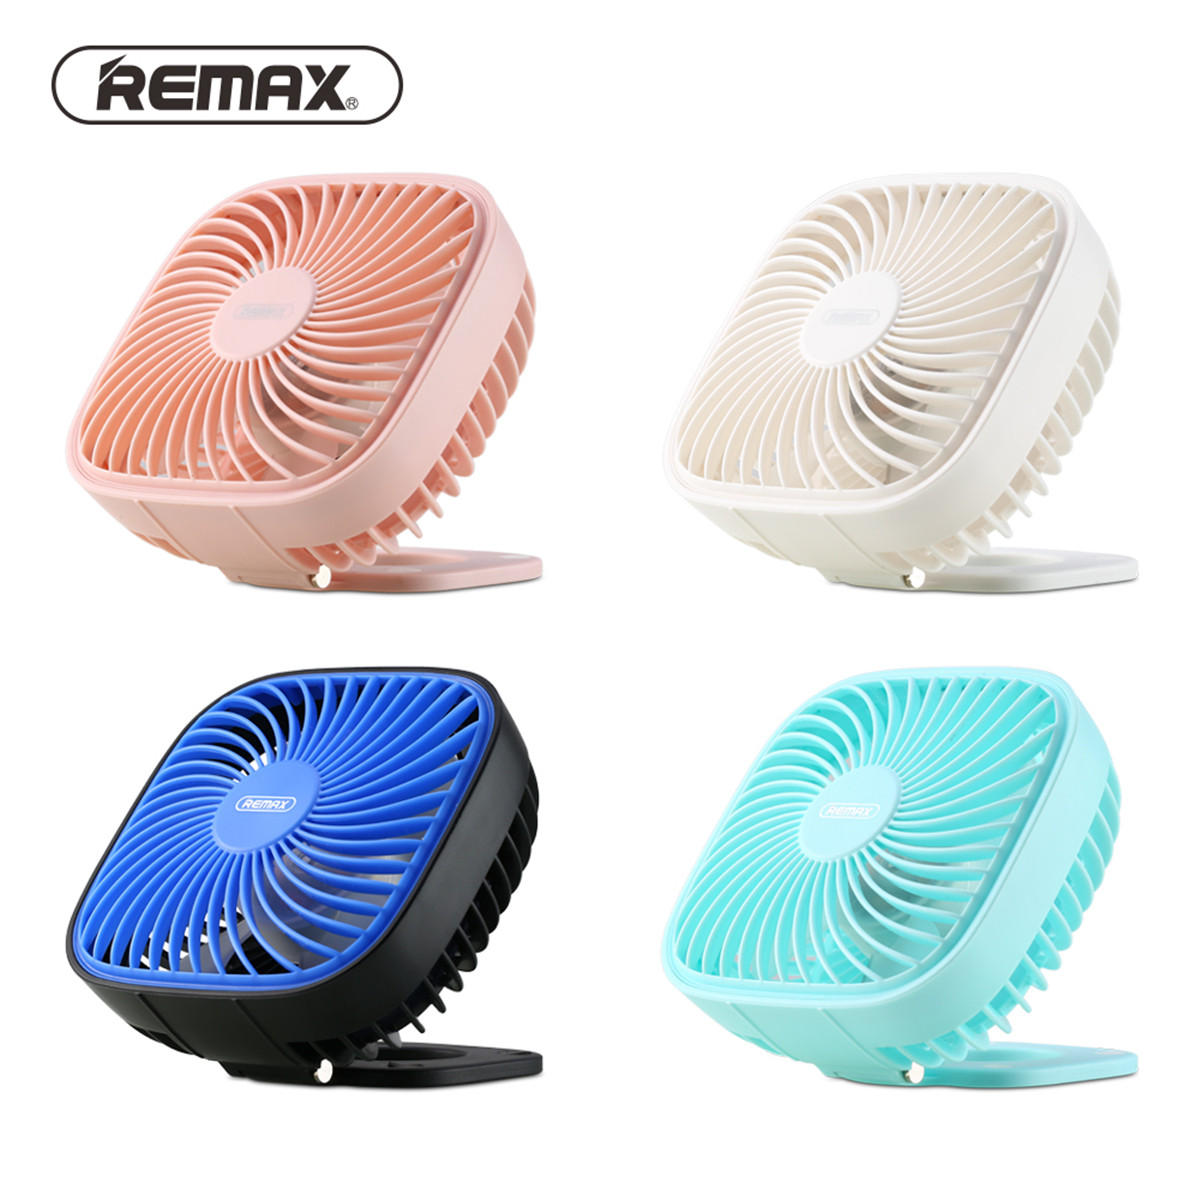 Remax F23 3-Speed USB Fan Mini Portable Cooling Desk Office Computer Laptop Fan